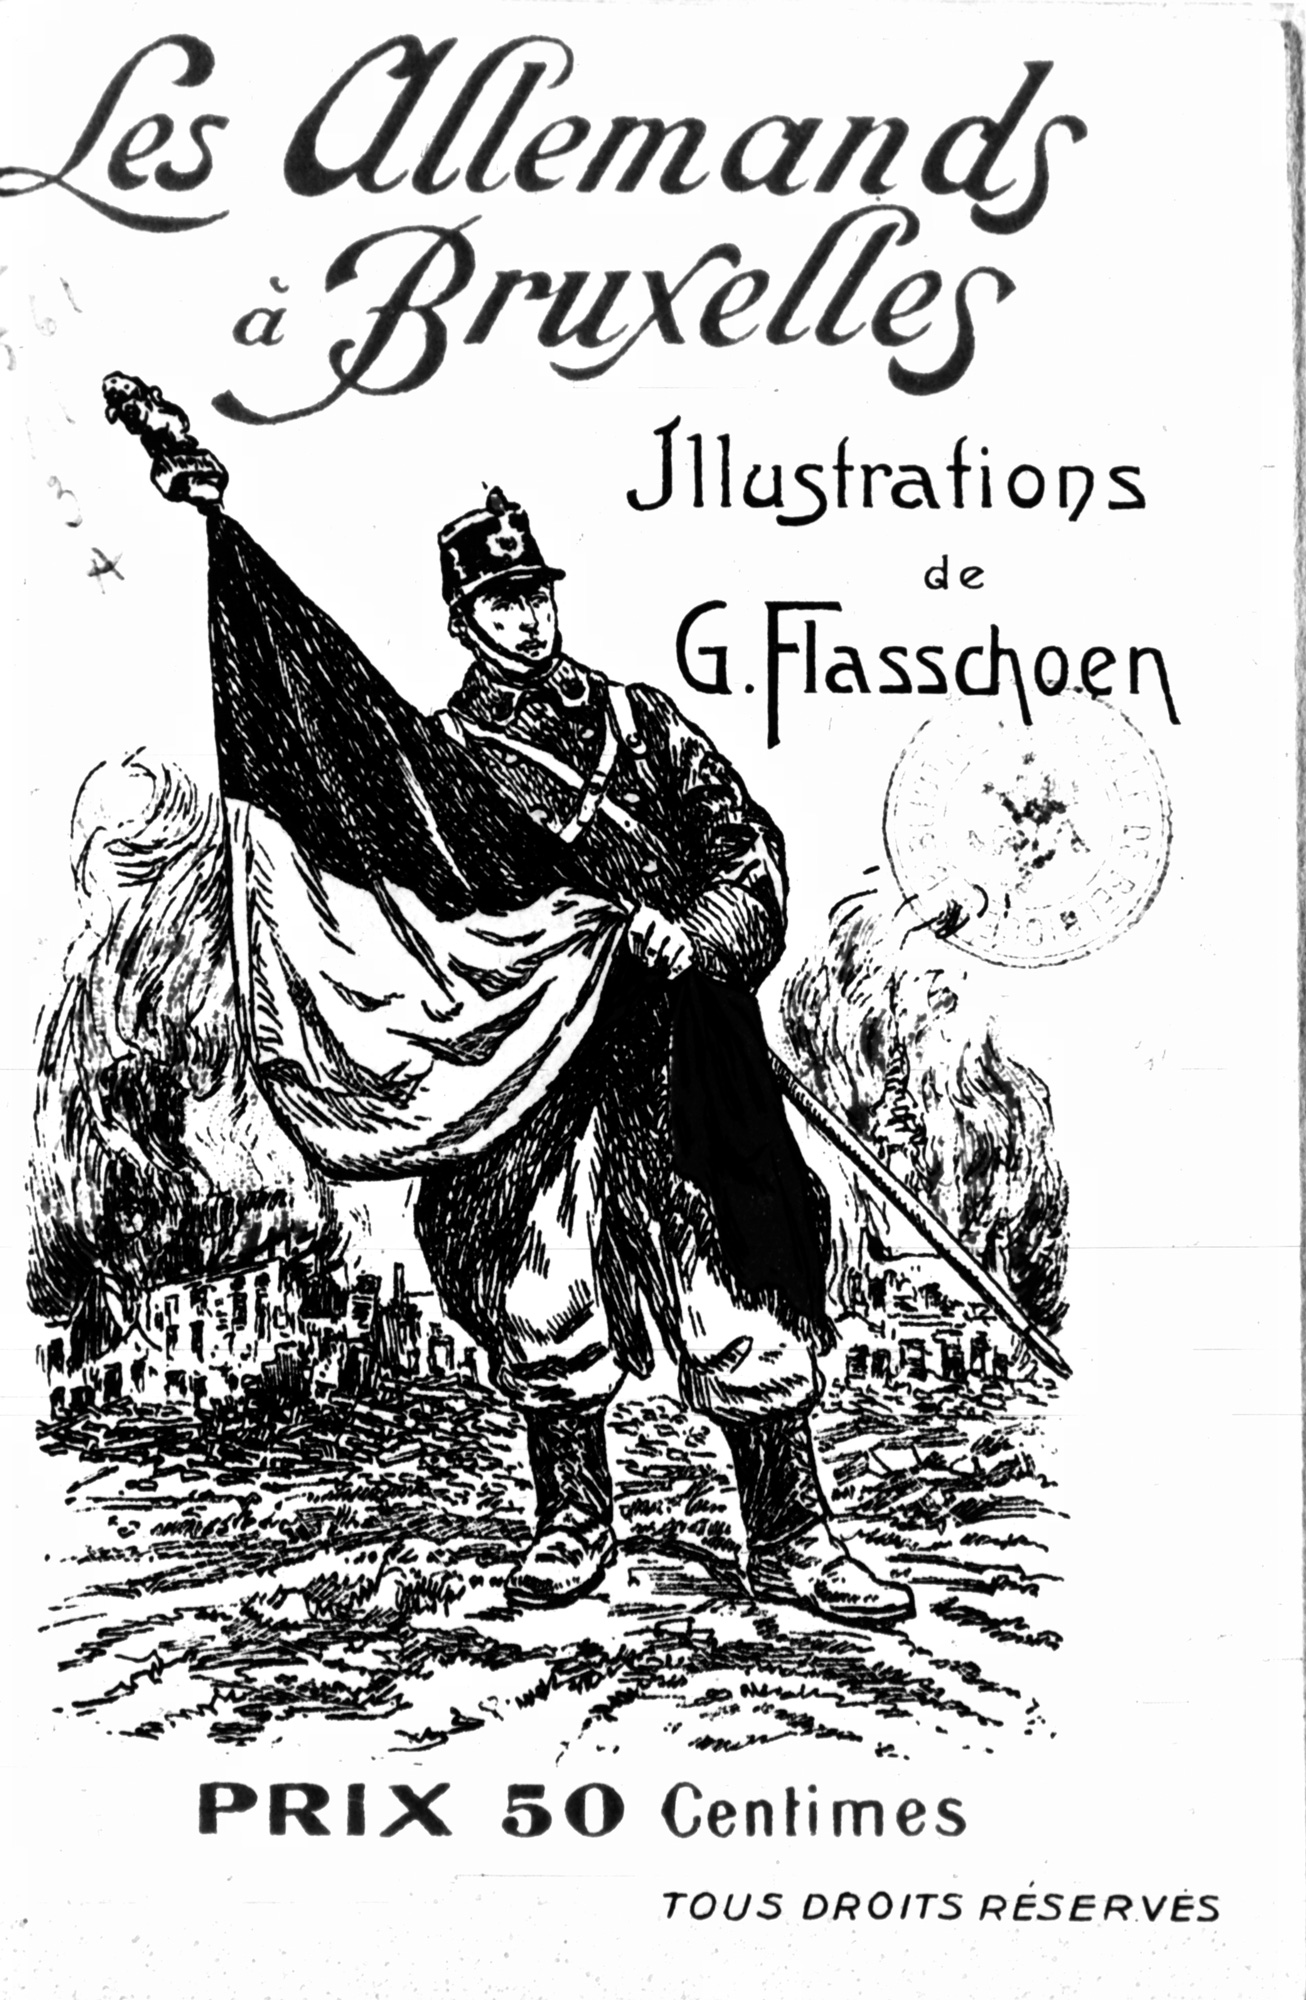 'The Germans in Brussels': Belgian propaganda leaflet from the end of the war.